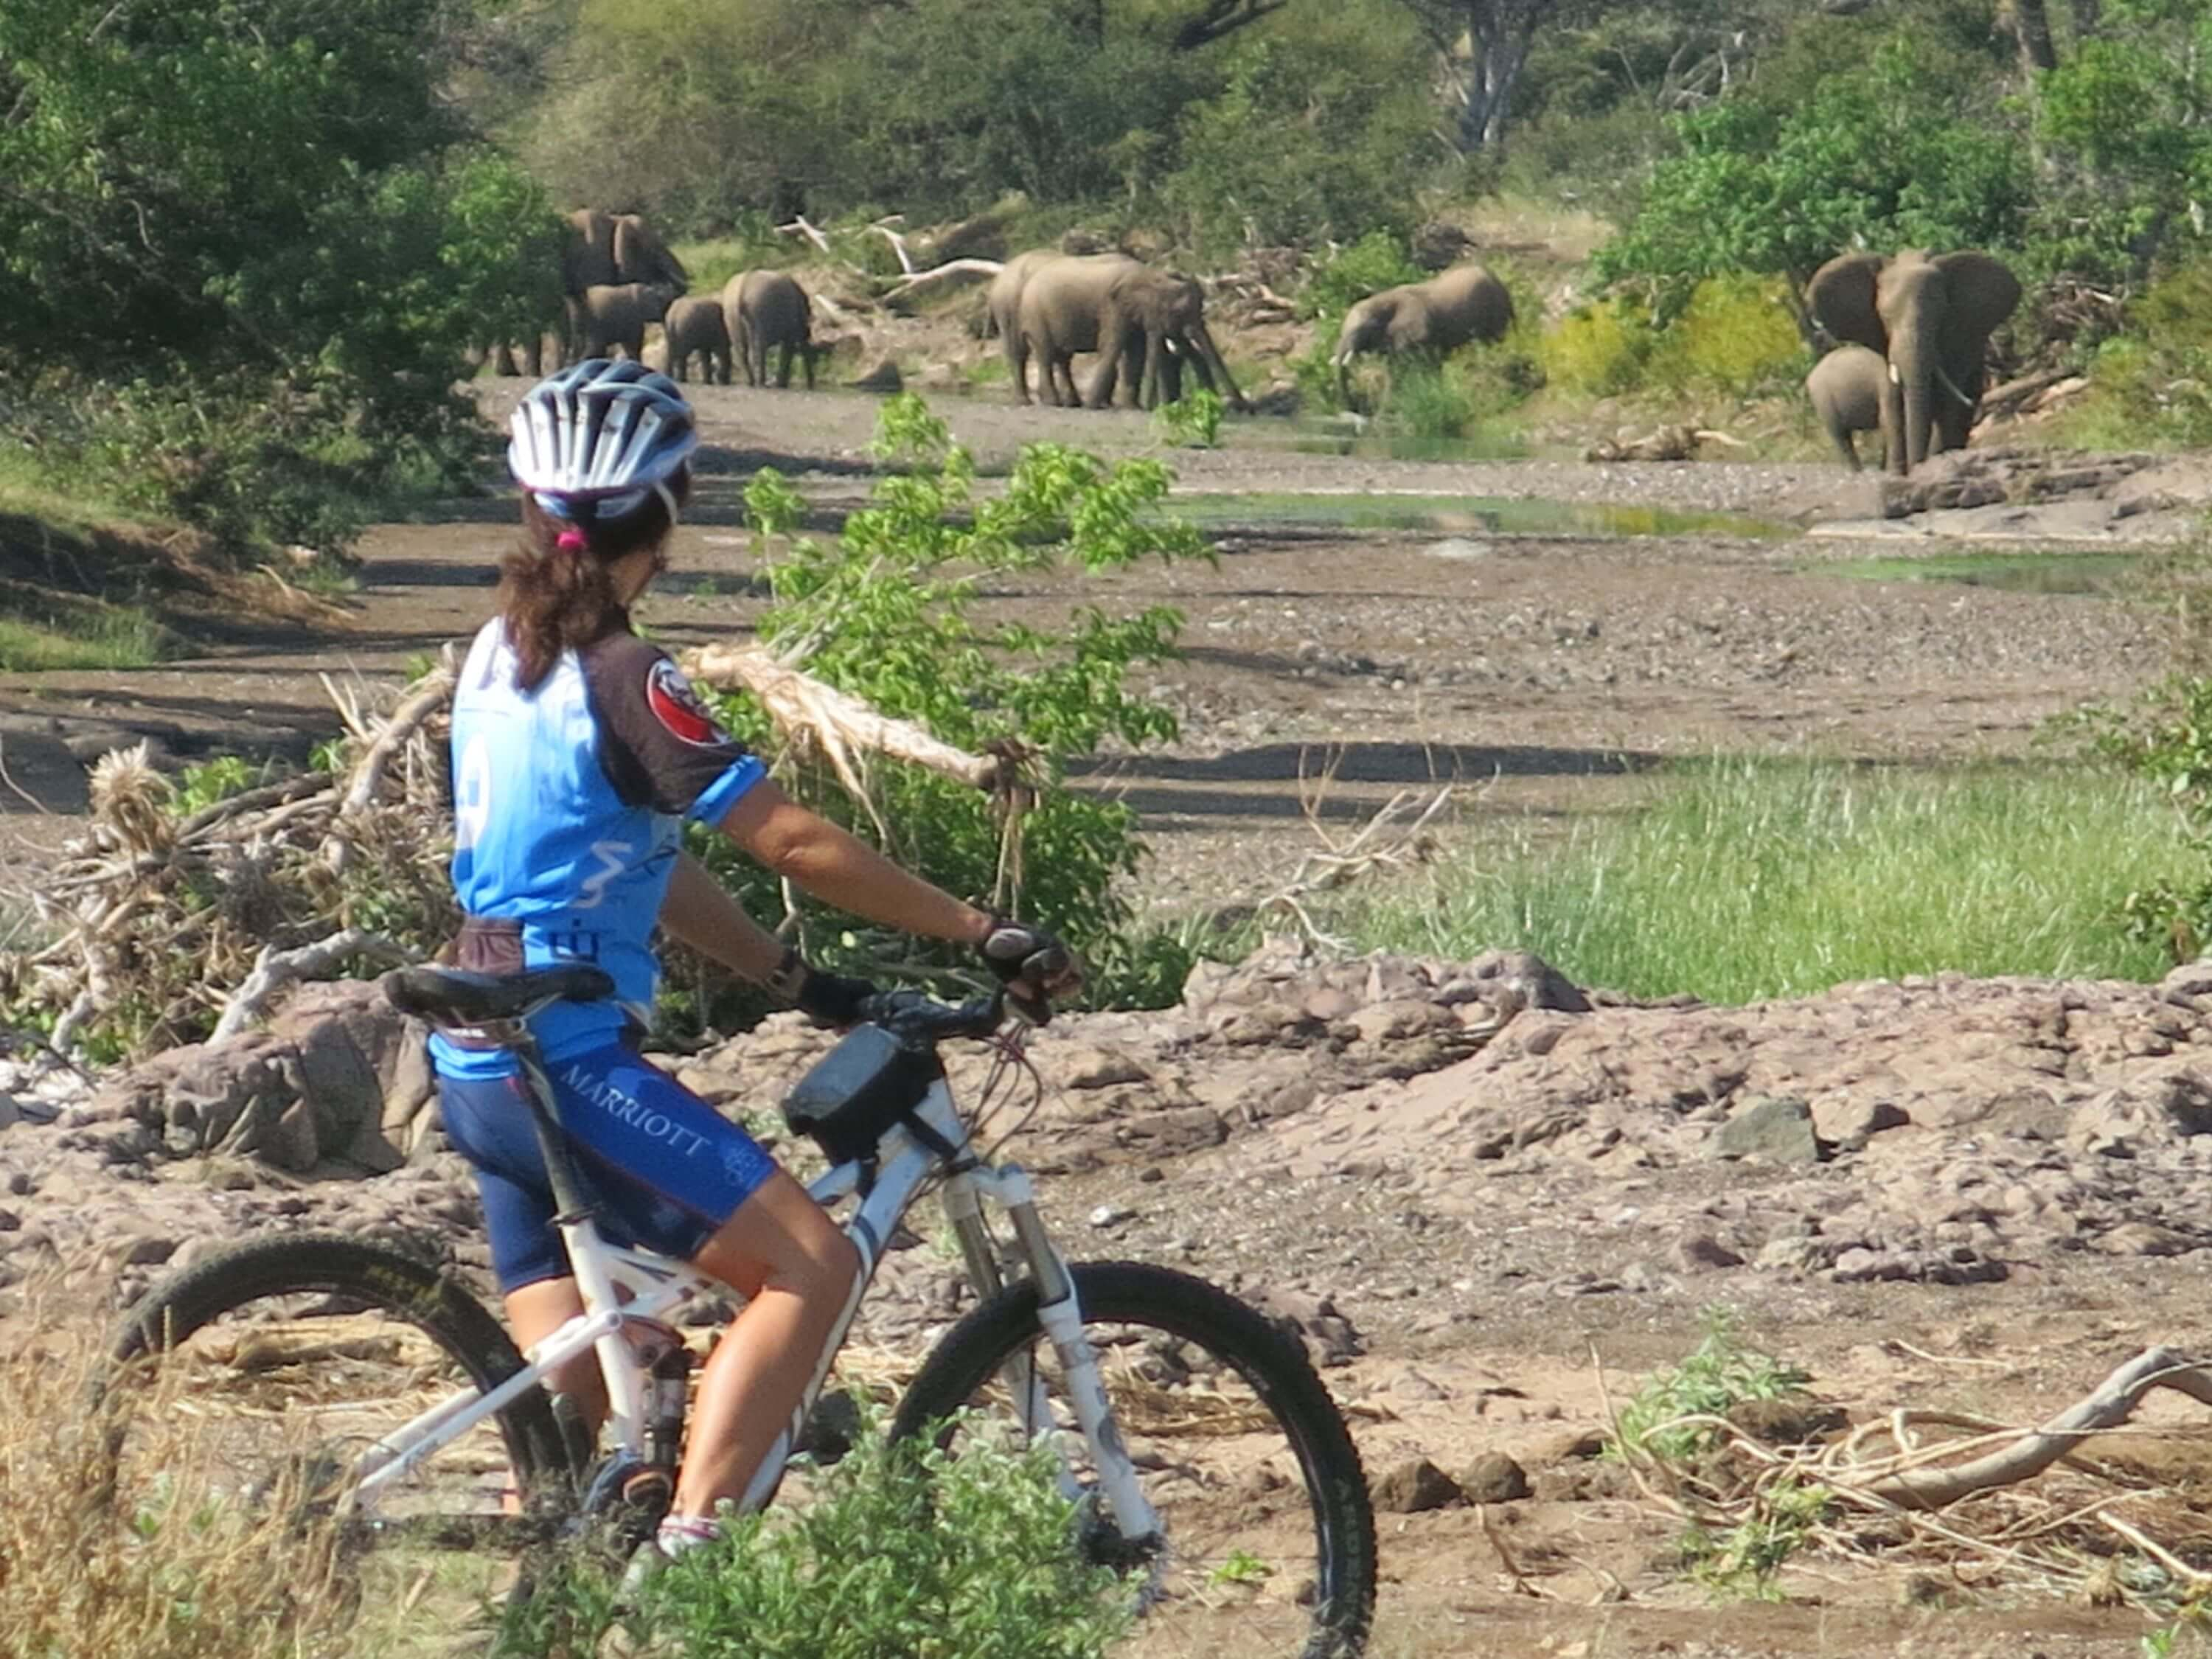 Cycling Safari Tanzania safaris